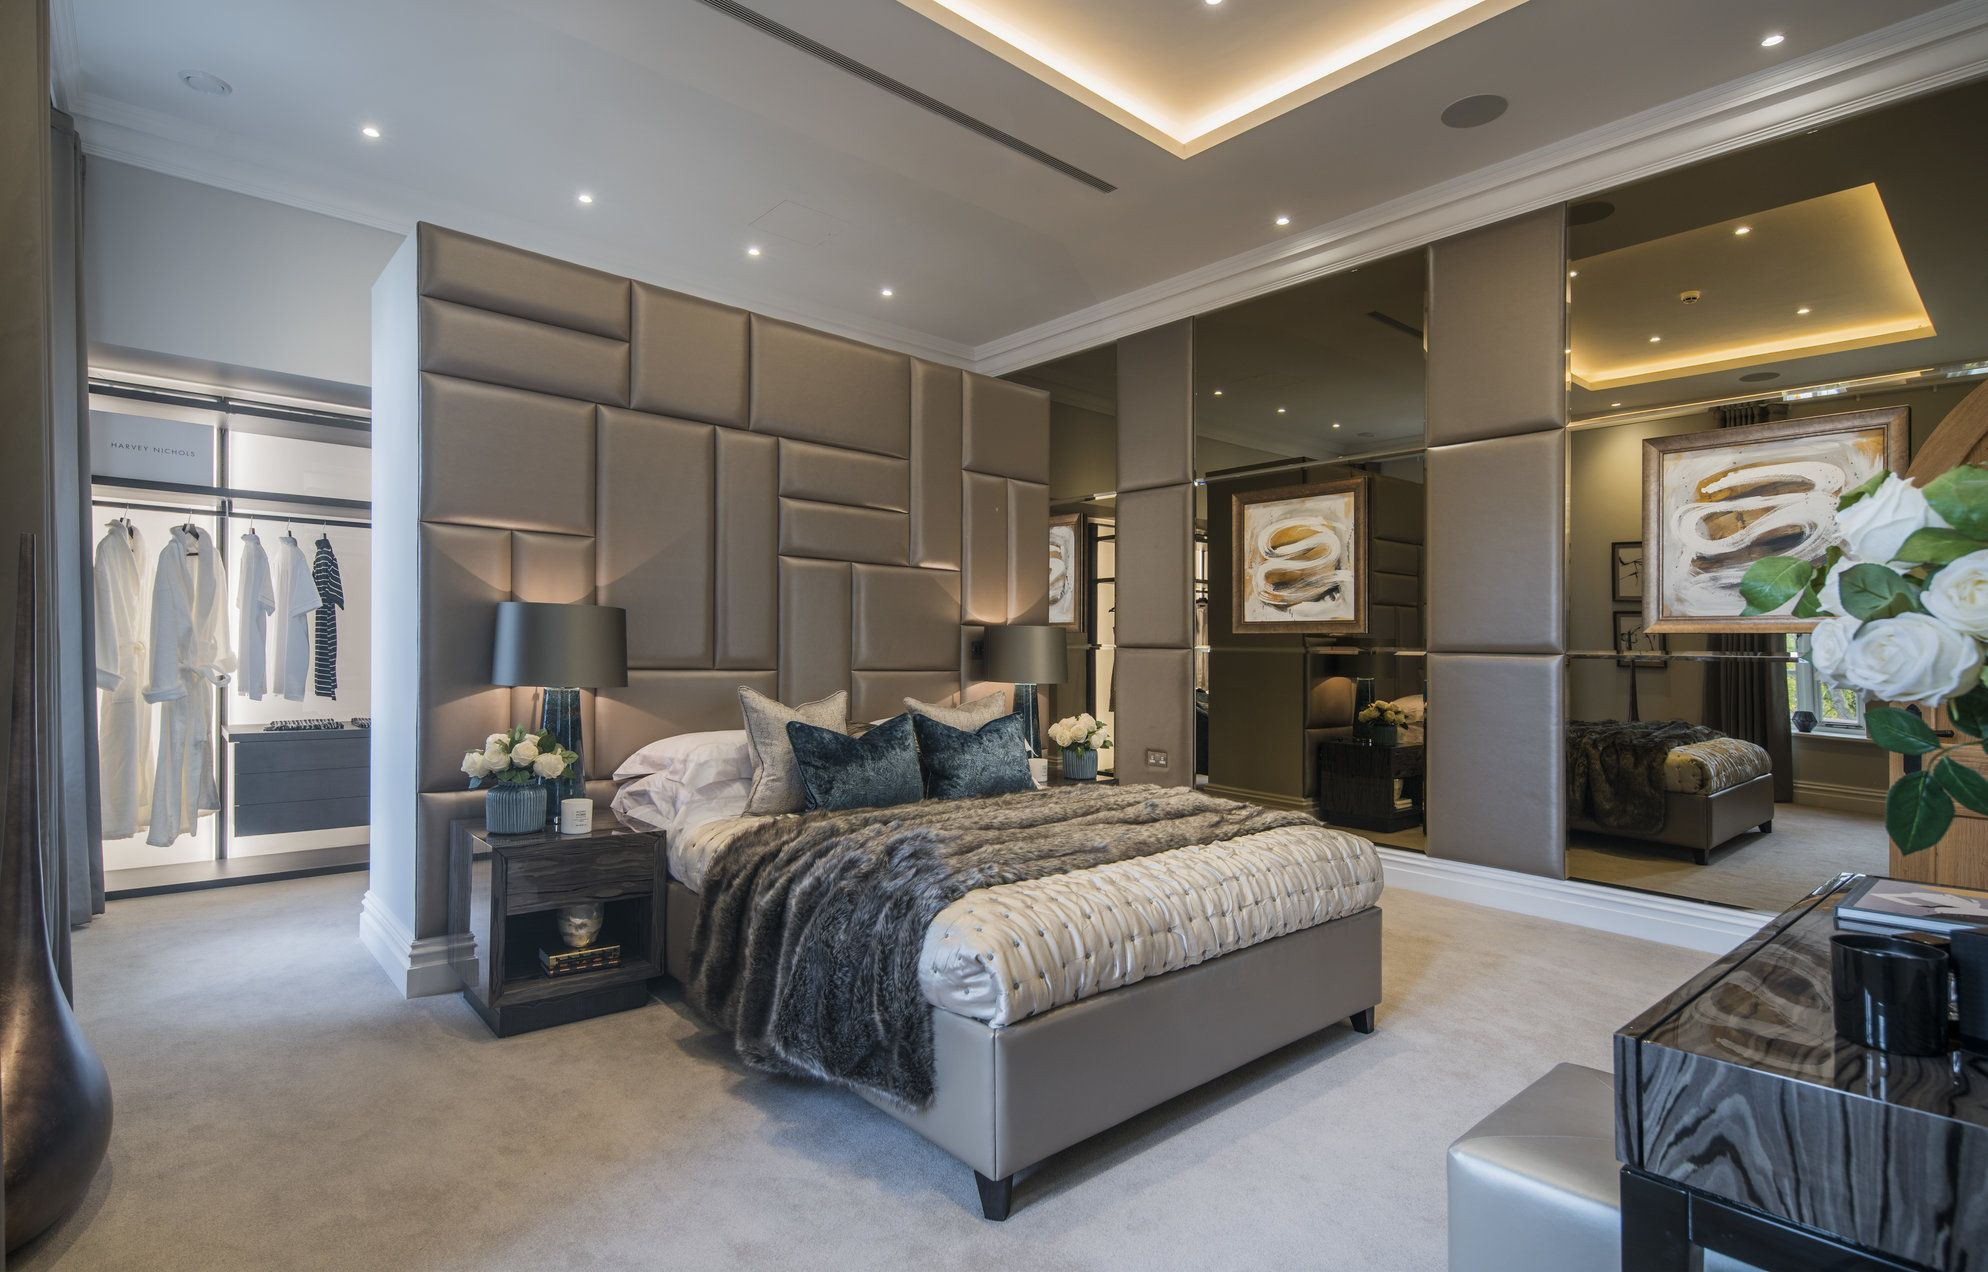 The luxurious bedroom in our London Chapel conversion ...